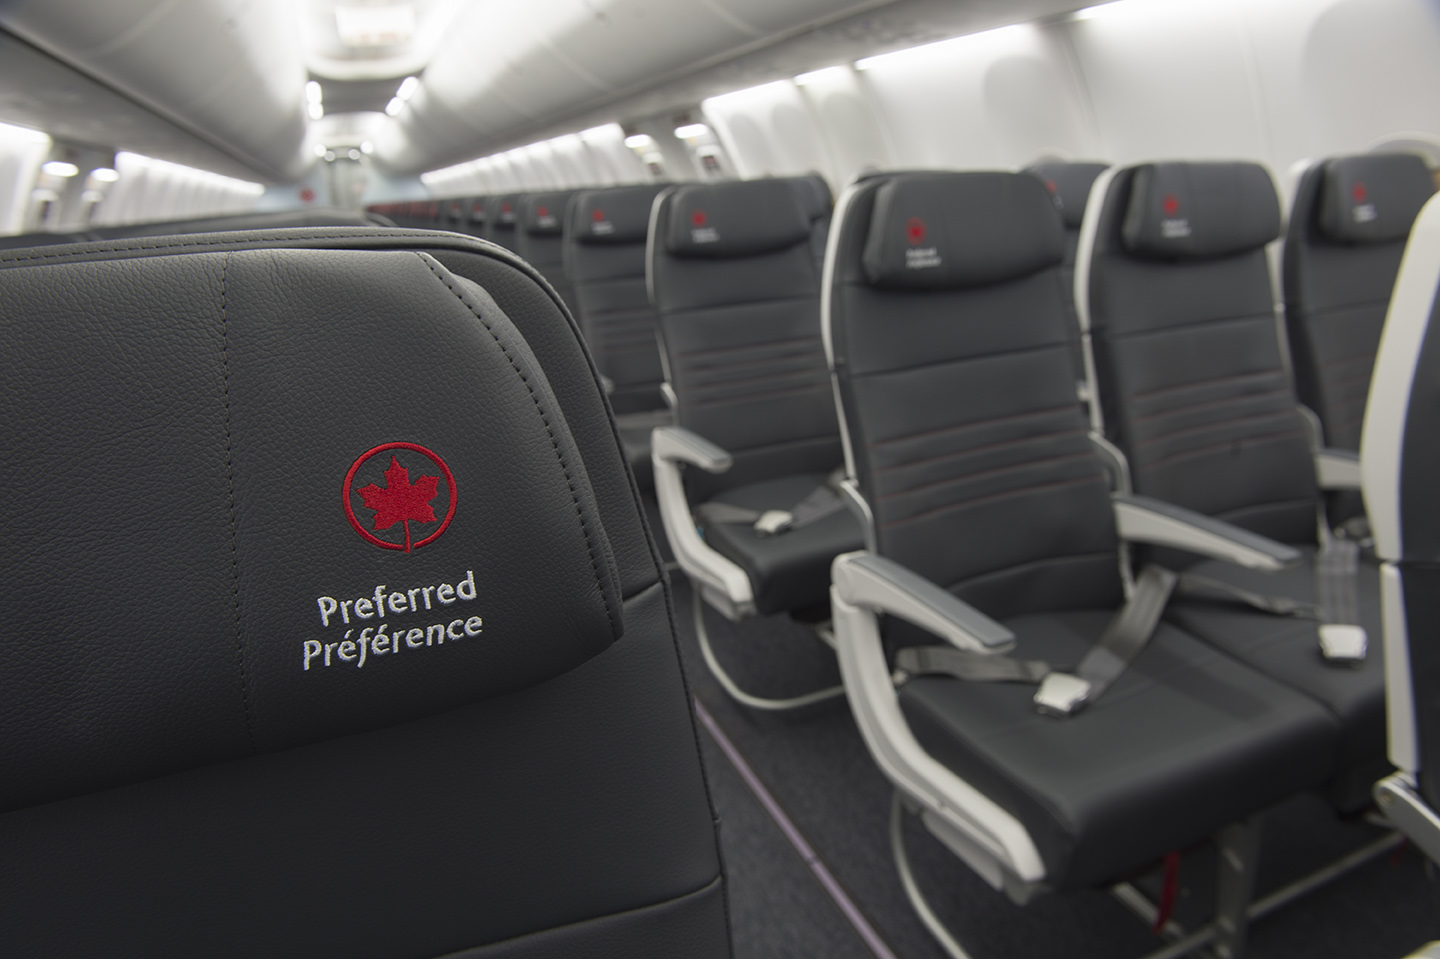 Detalhe do interior do novo Boeing 737 MAX da Air Canada